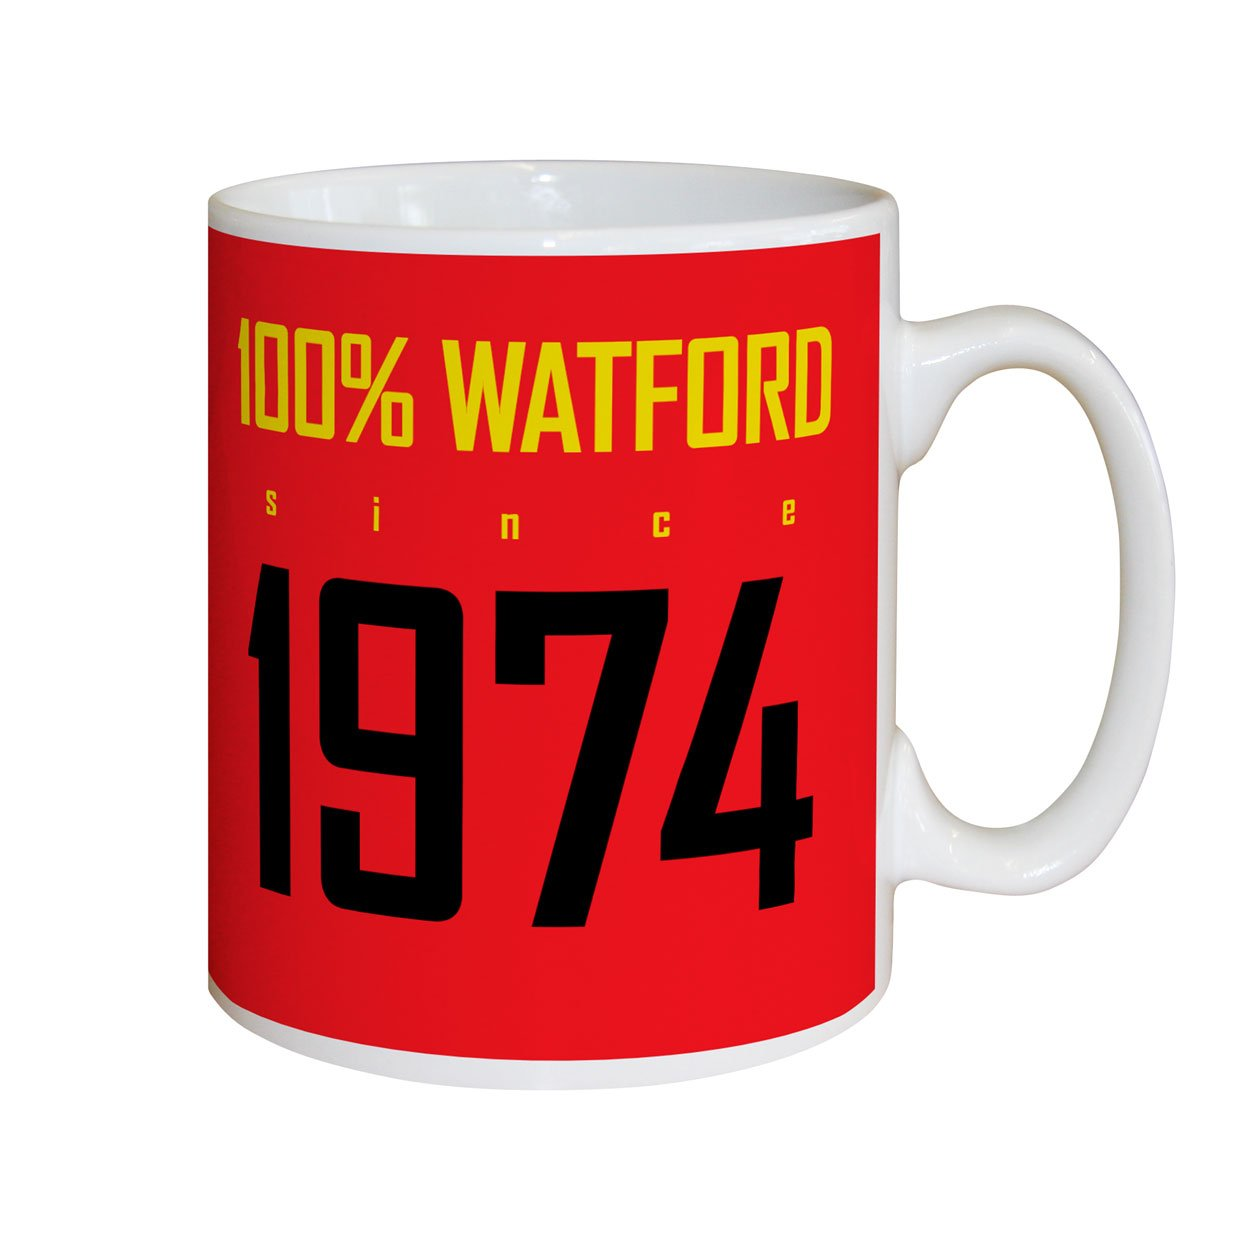 Watford FC 100 Percent Mugs, Gifts